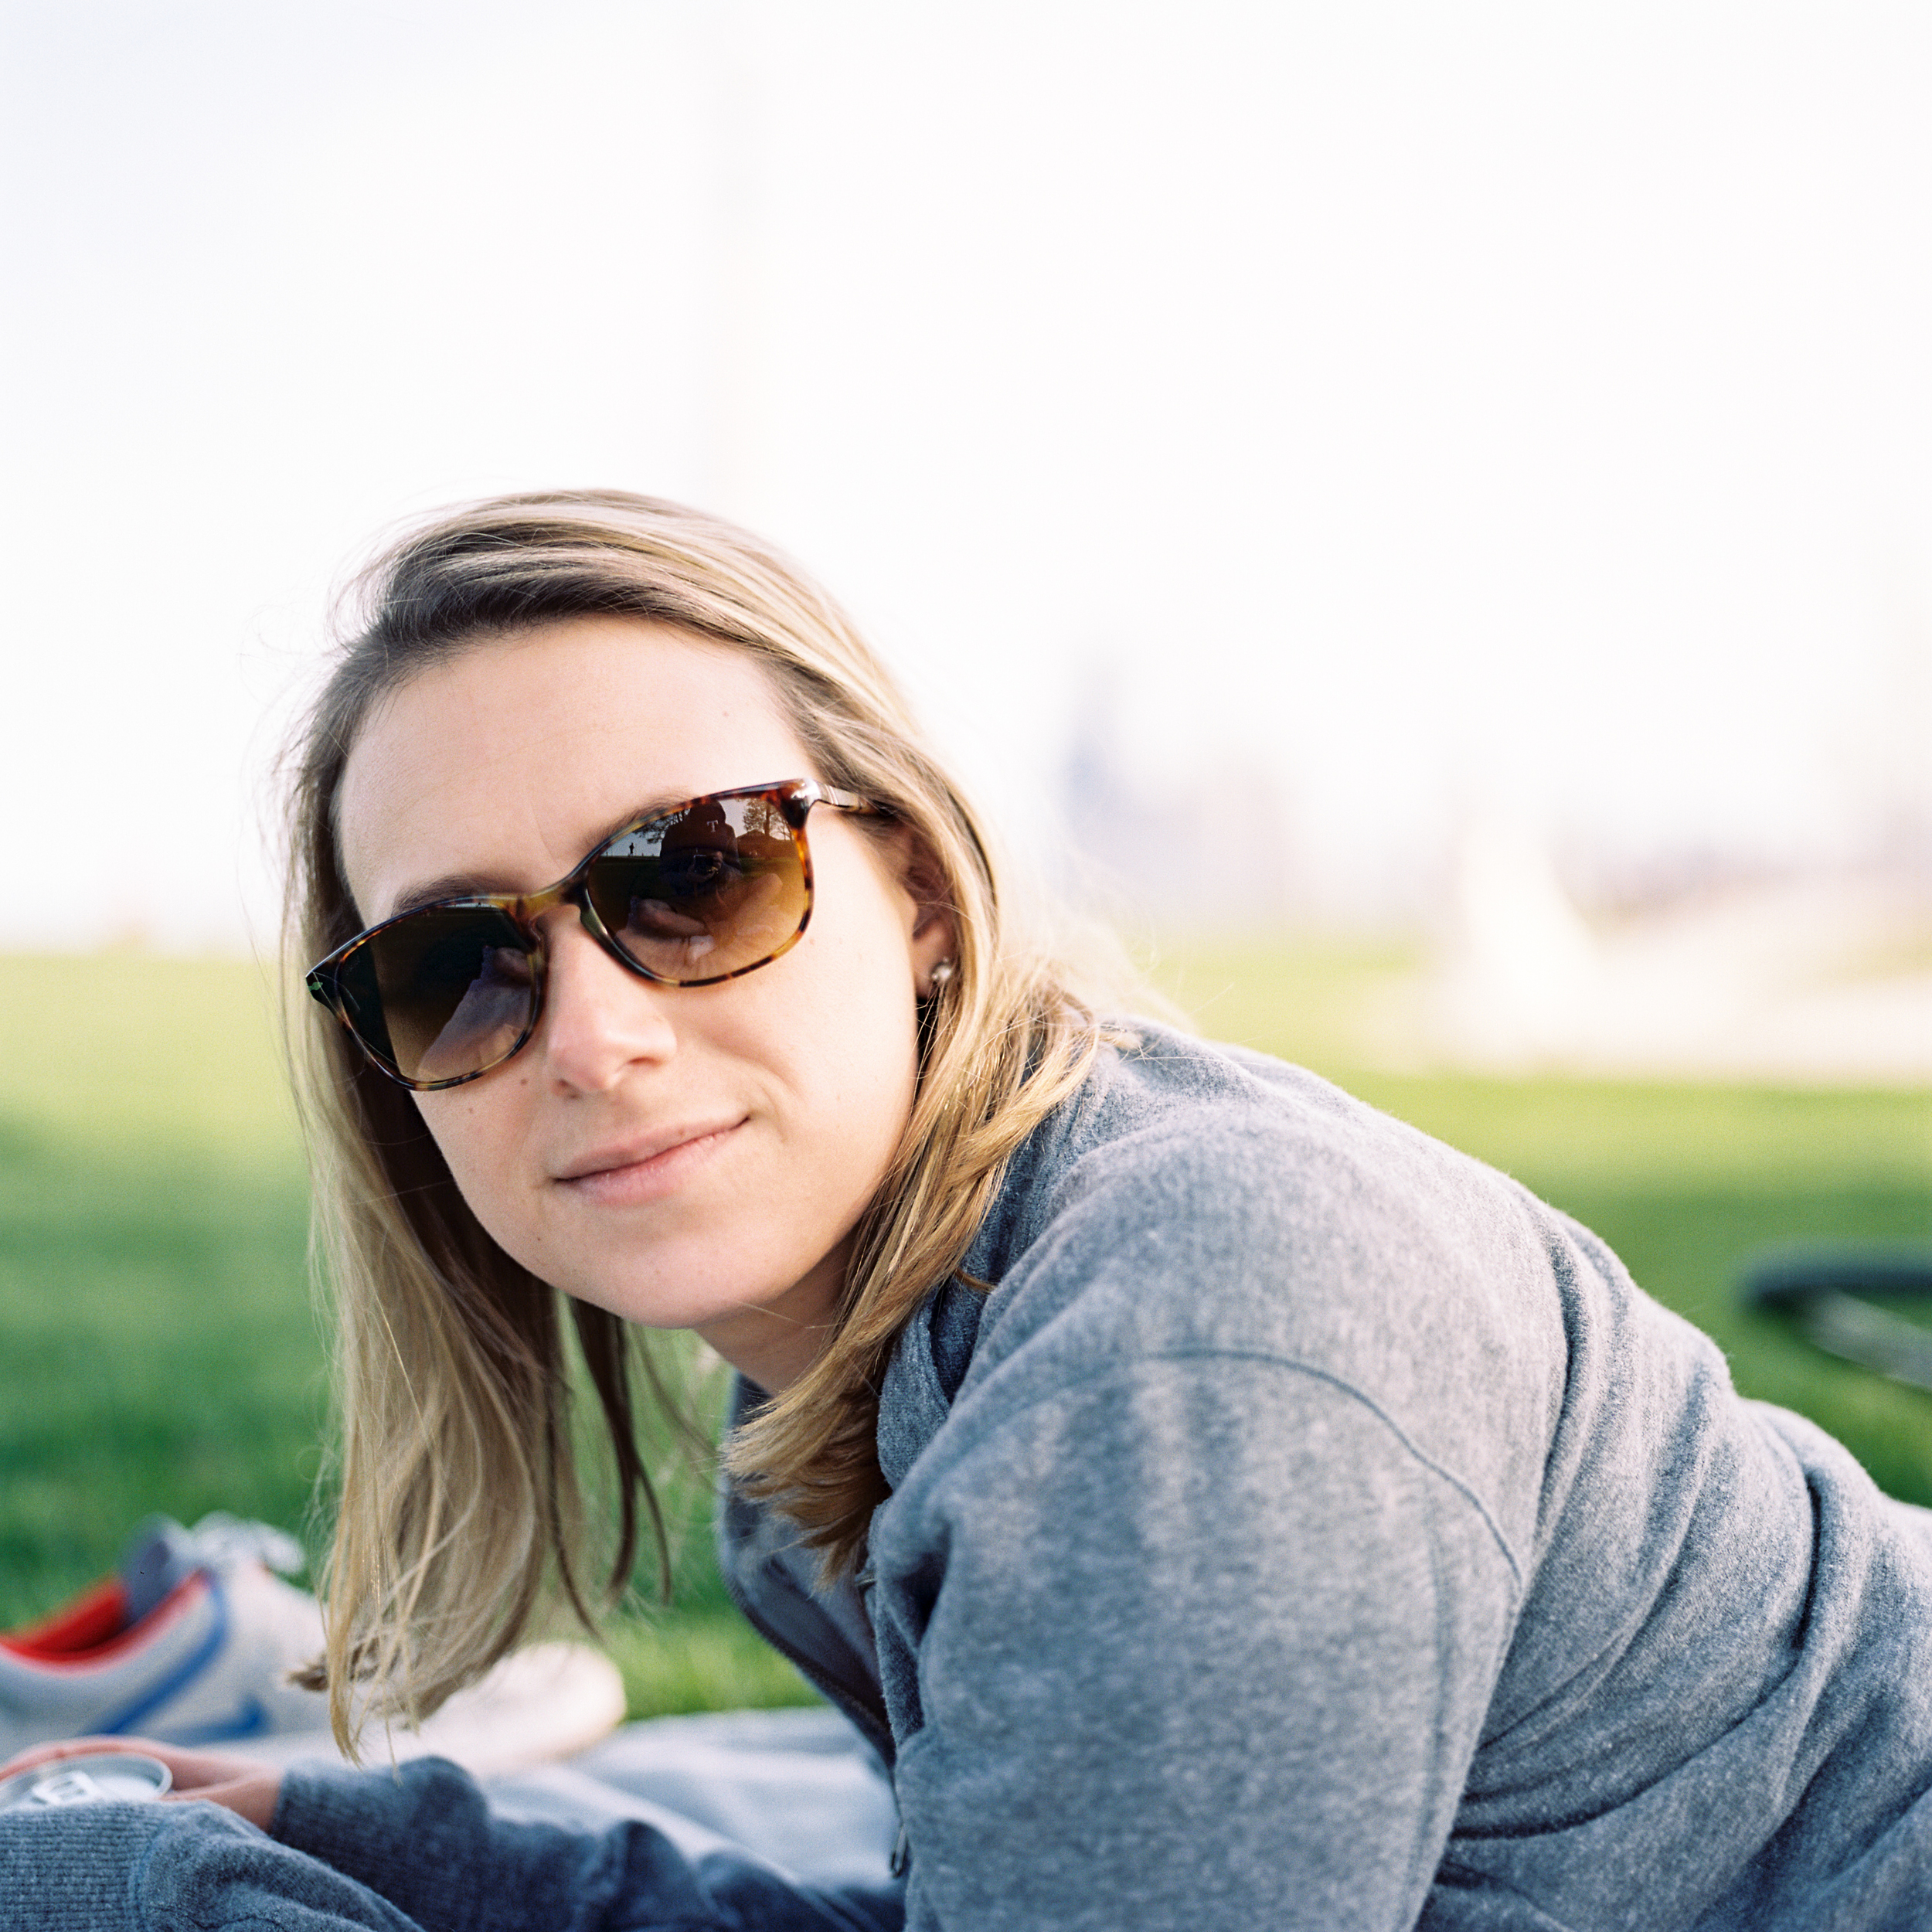 Latest roll shot on Hasselblad in May